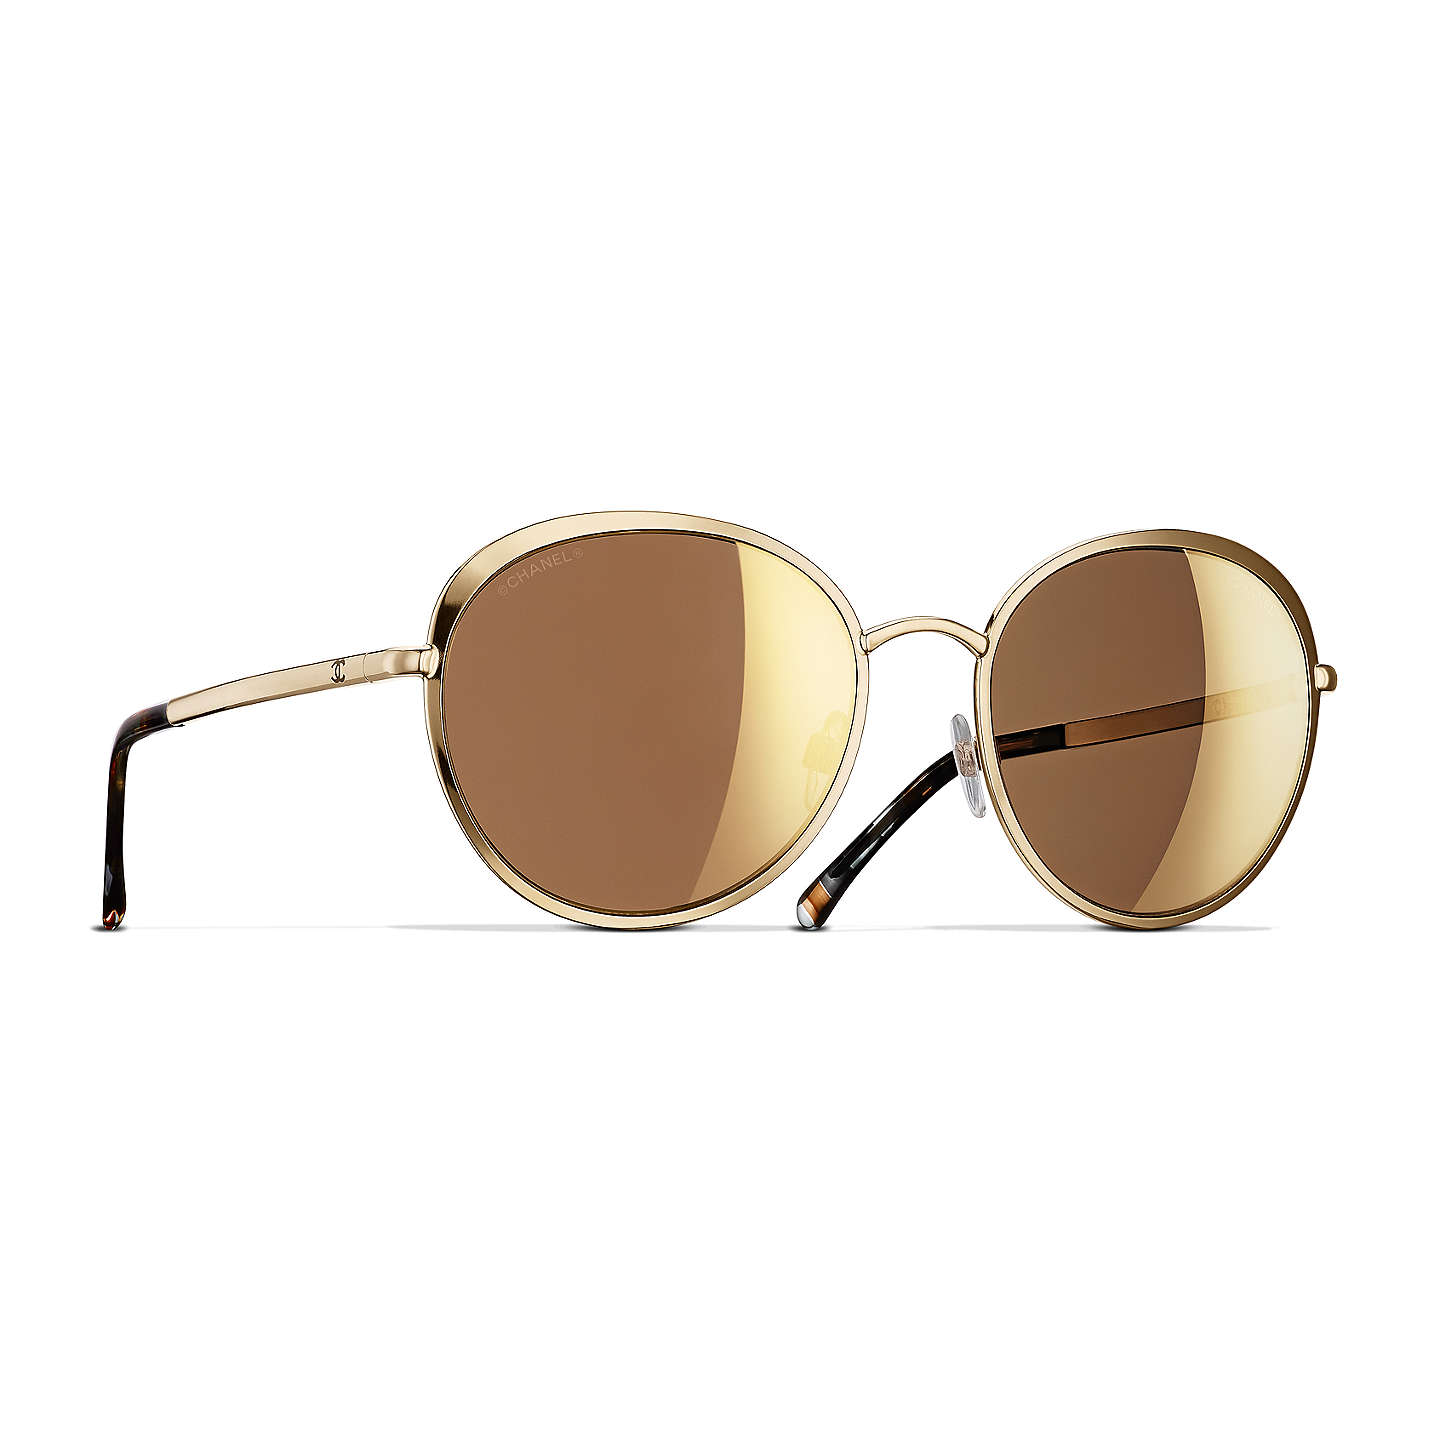 Chanel Round Sunglasses Ch4206 Gold by Chanel